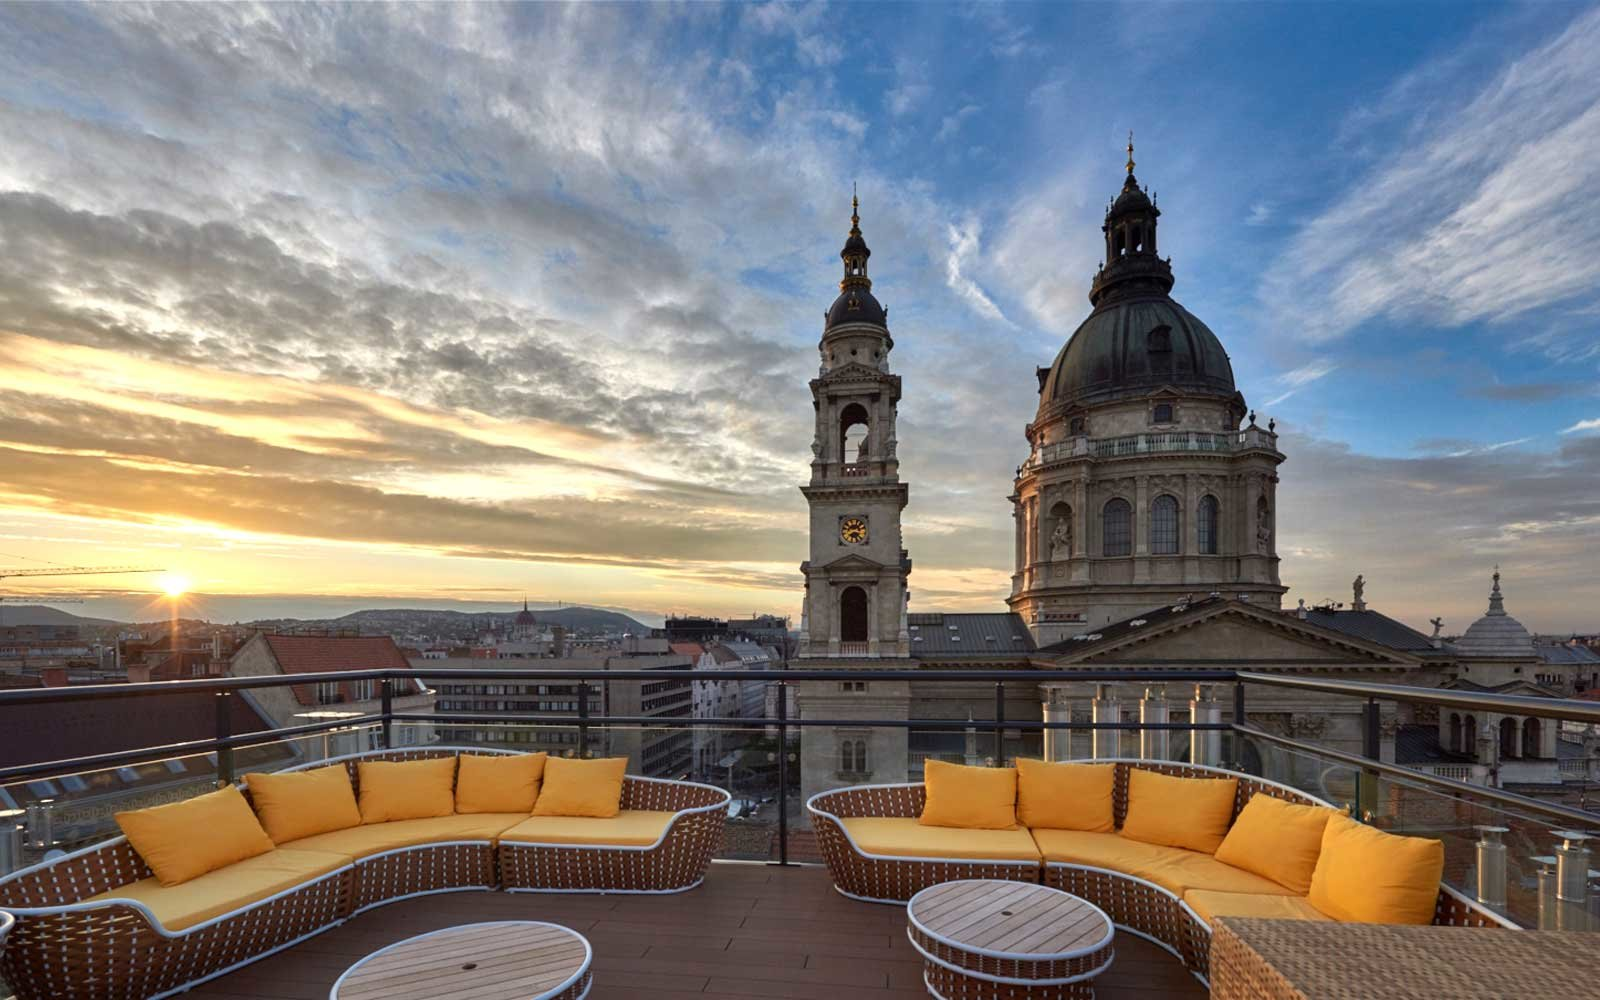 aria-hotel-budapest-ROOFVIEWS0717.jpg